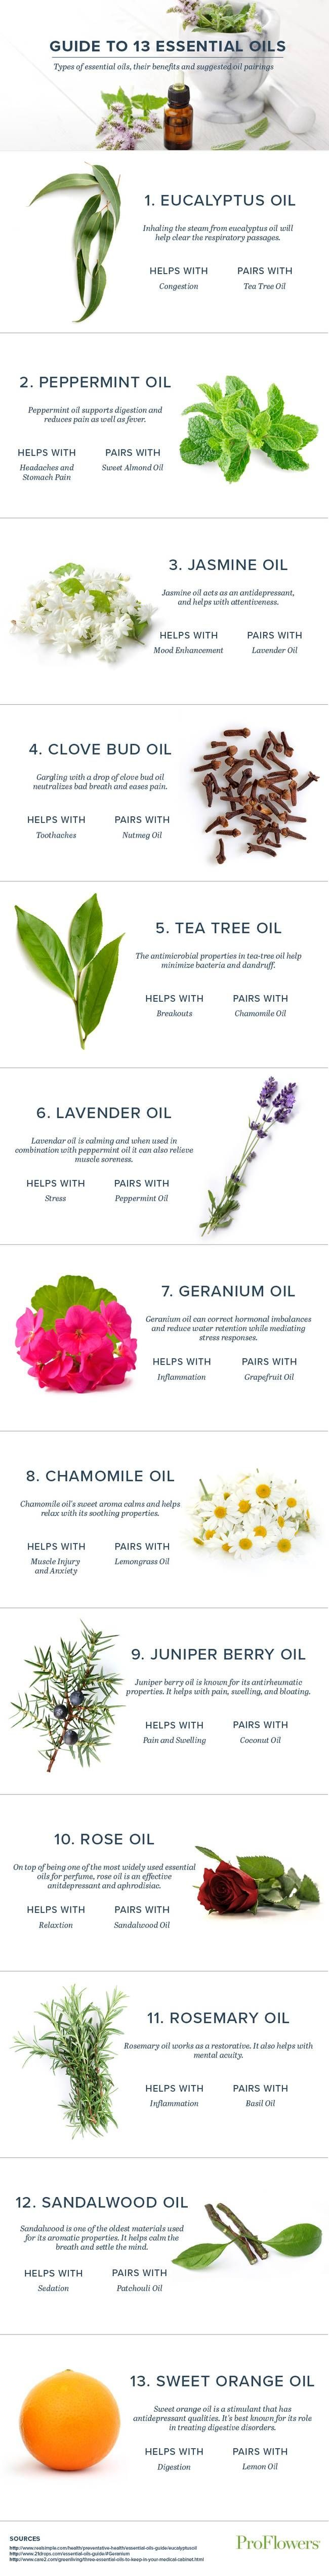 159 best jasmine images on pinterest flower tea jasmine and 13 essential oils and what theyre good for dhlflorist Gallery